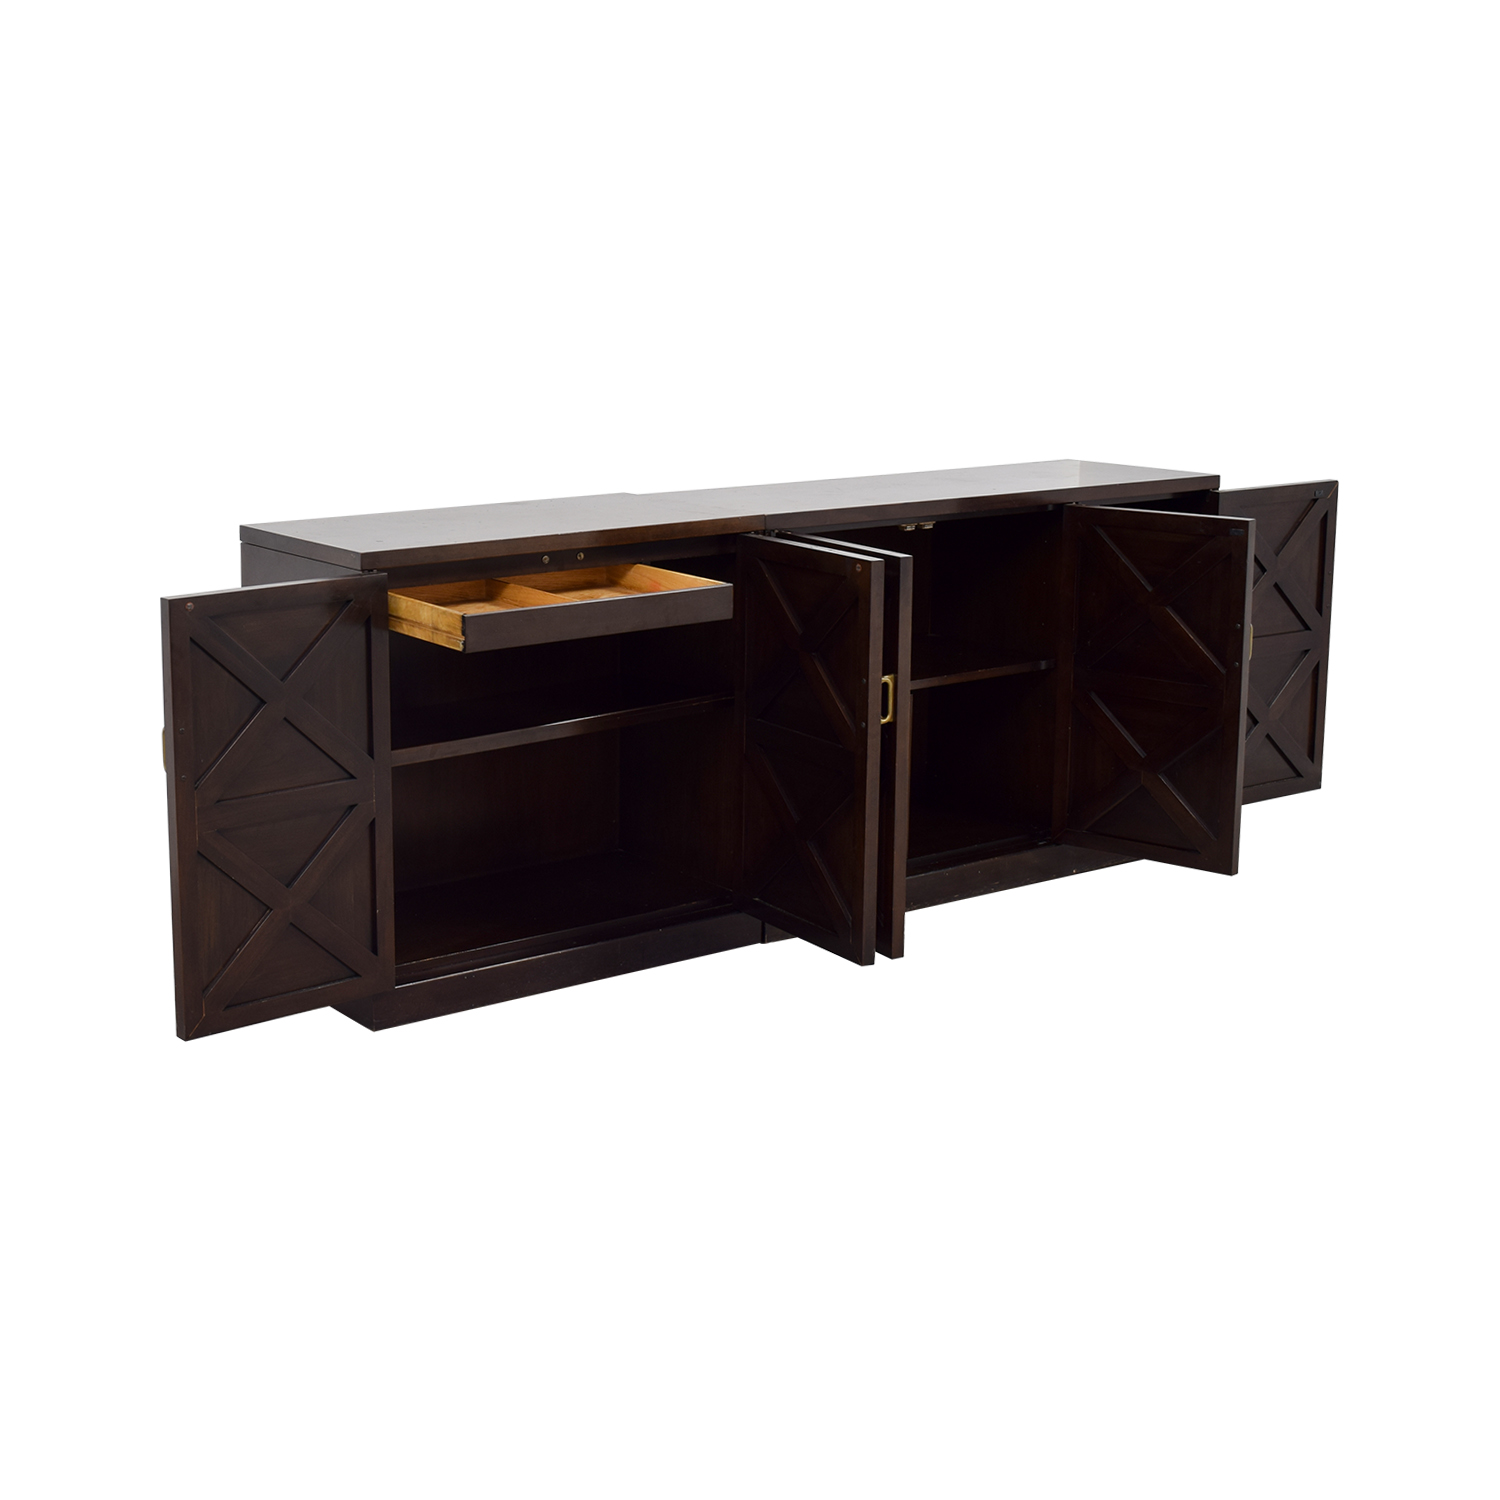 Mahogany Sideboard with Drawers and Shelves dimensions